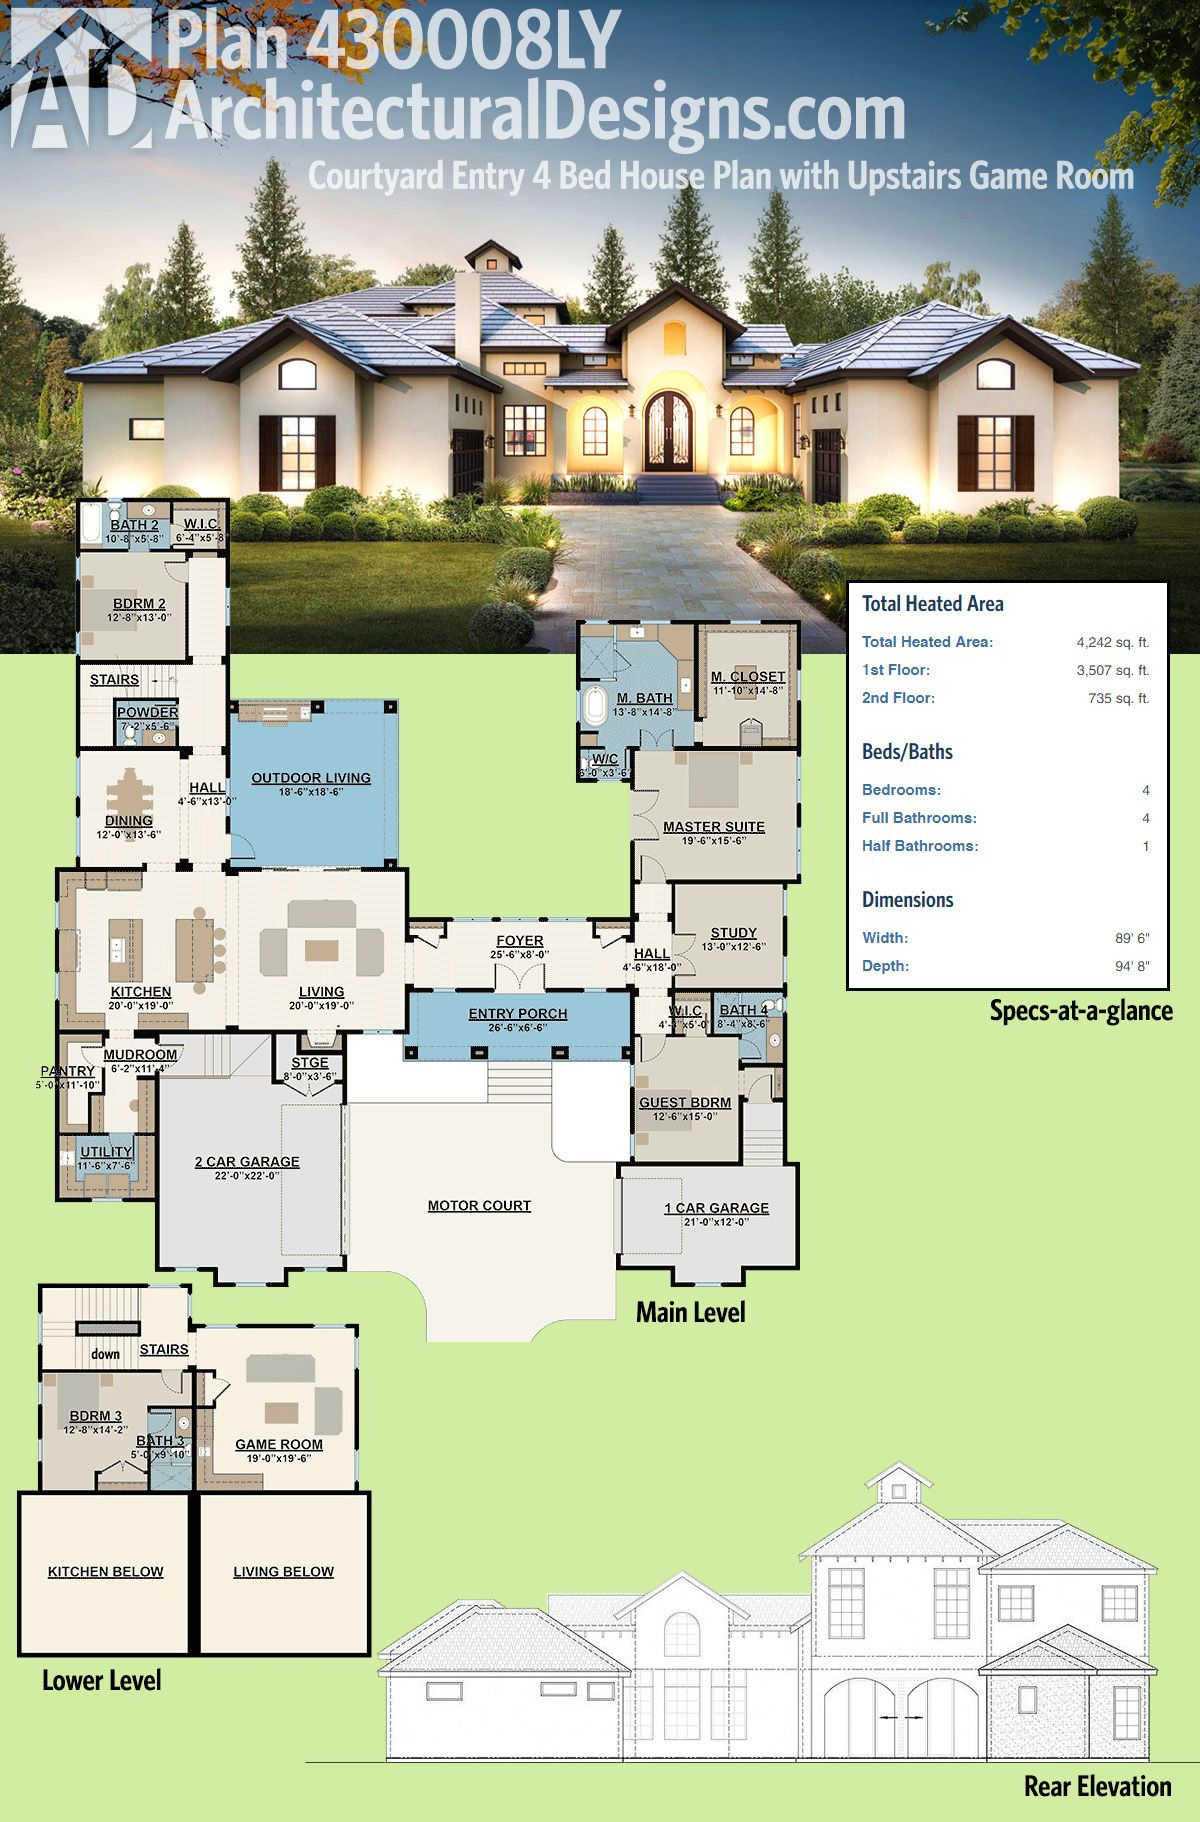 Plan 430008ly Courtyard Entry 4 Bed House Plan With Upstairs Game Room Pool House Plans Courtyard House Plans Mediterranean House Plans